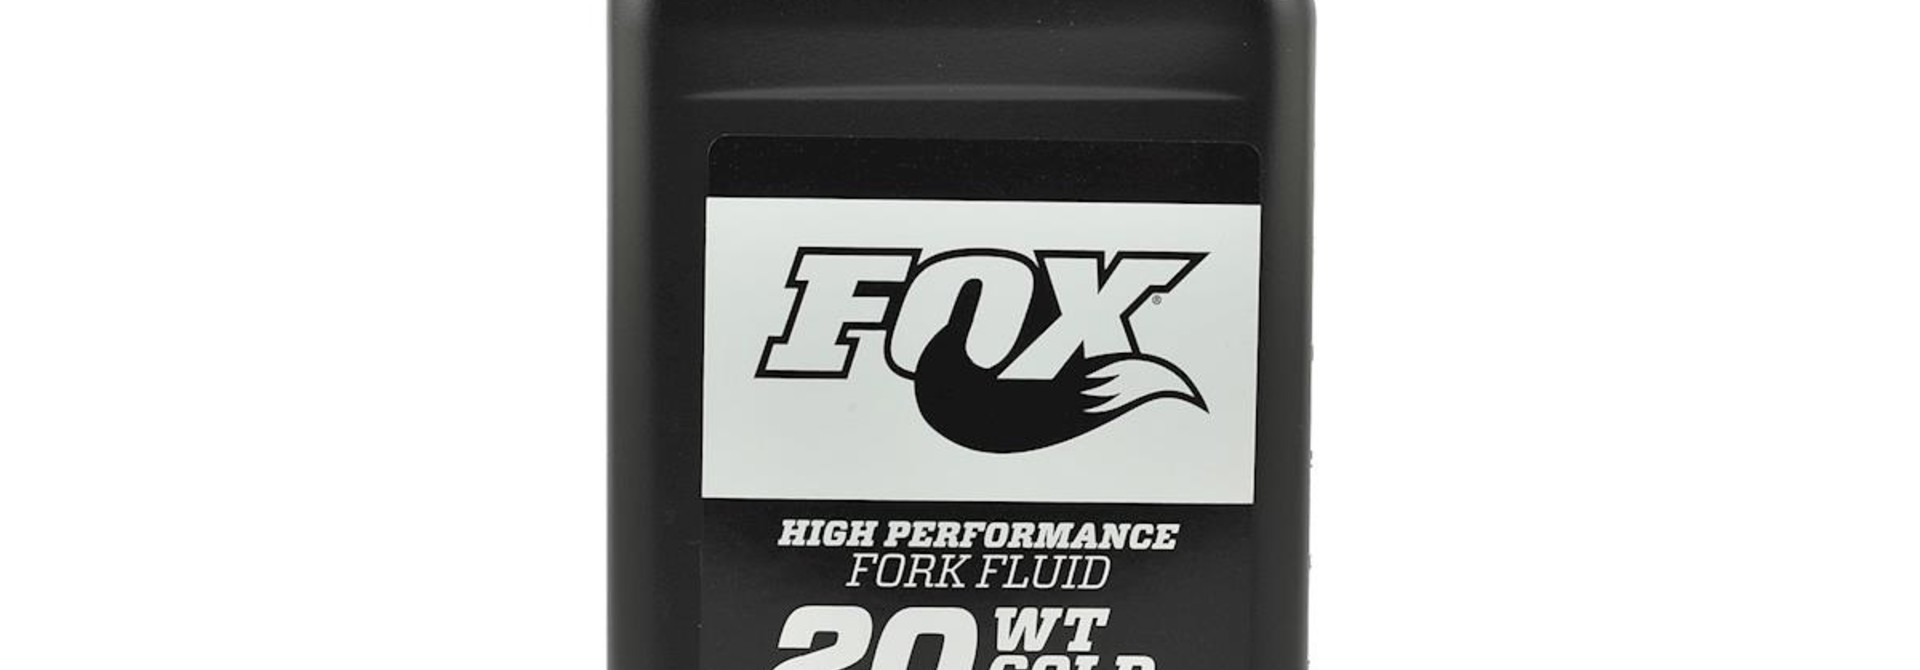 Fox Suspension Bath Oil, 20wt - Gold (32oz)